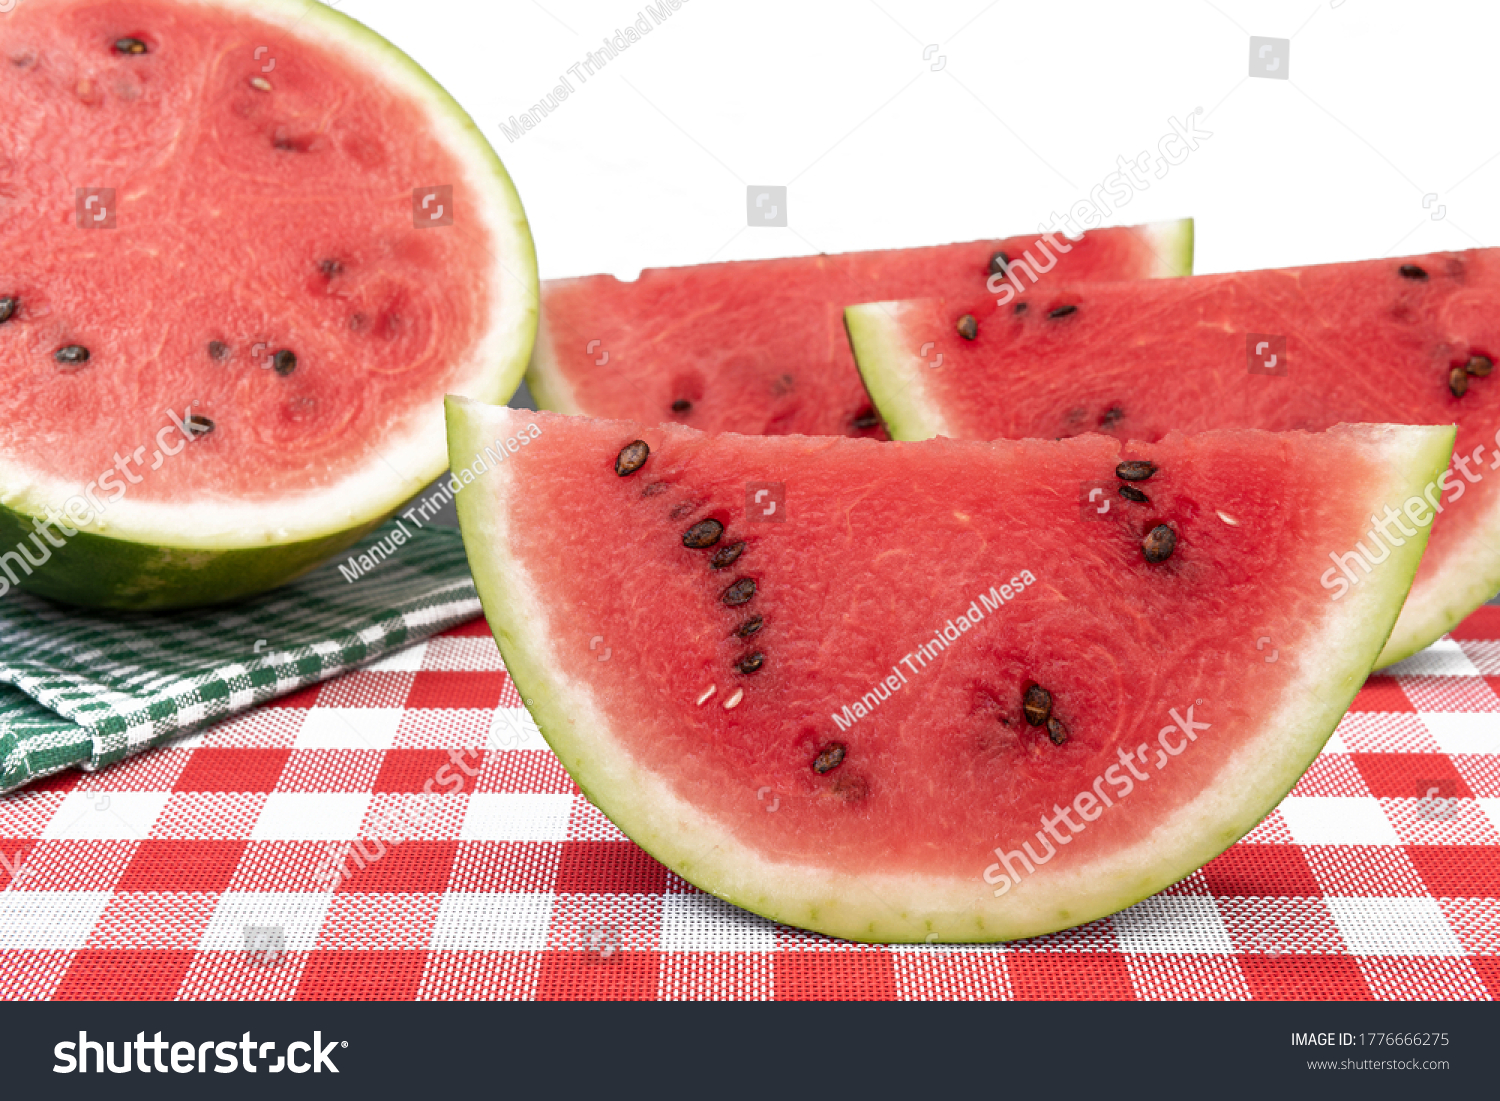 Pieces of watermelon on a red and white tablecloth